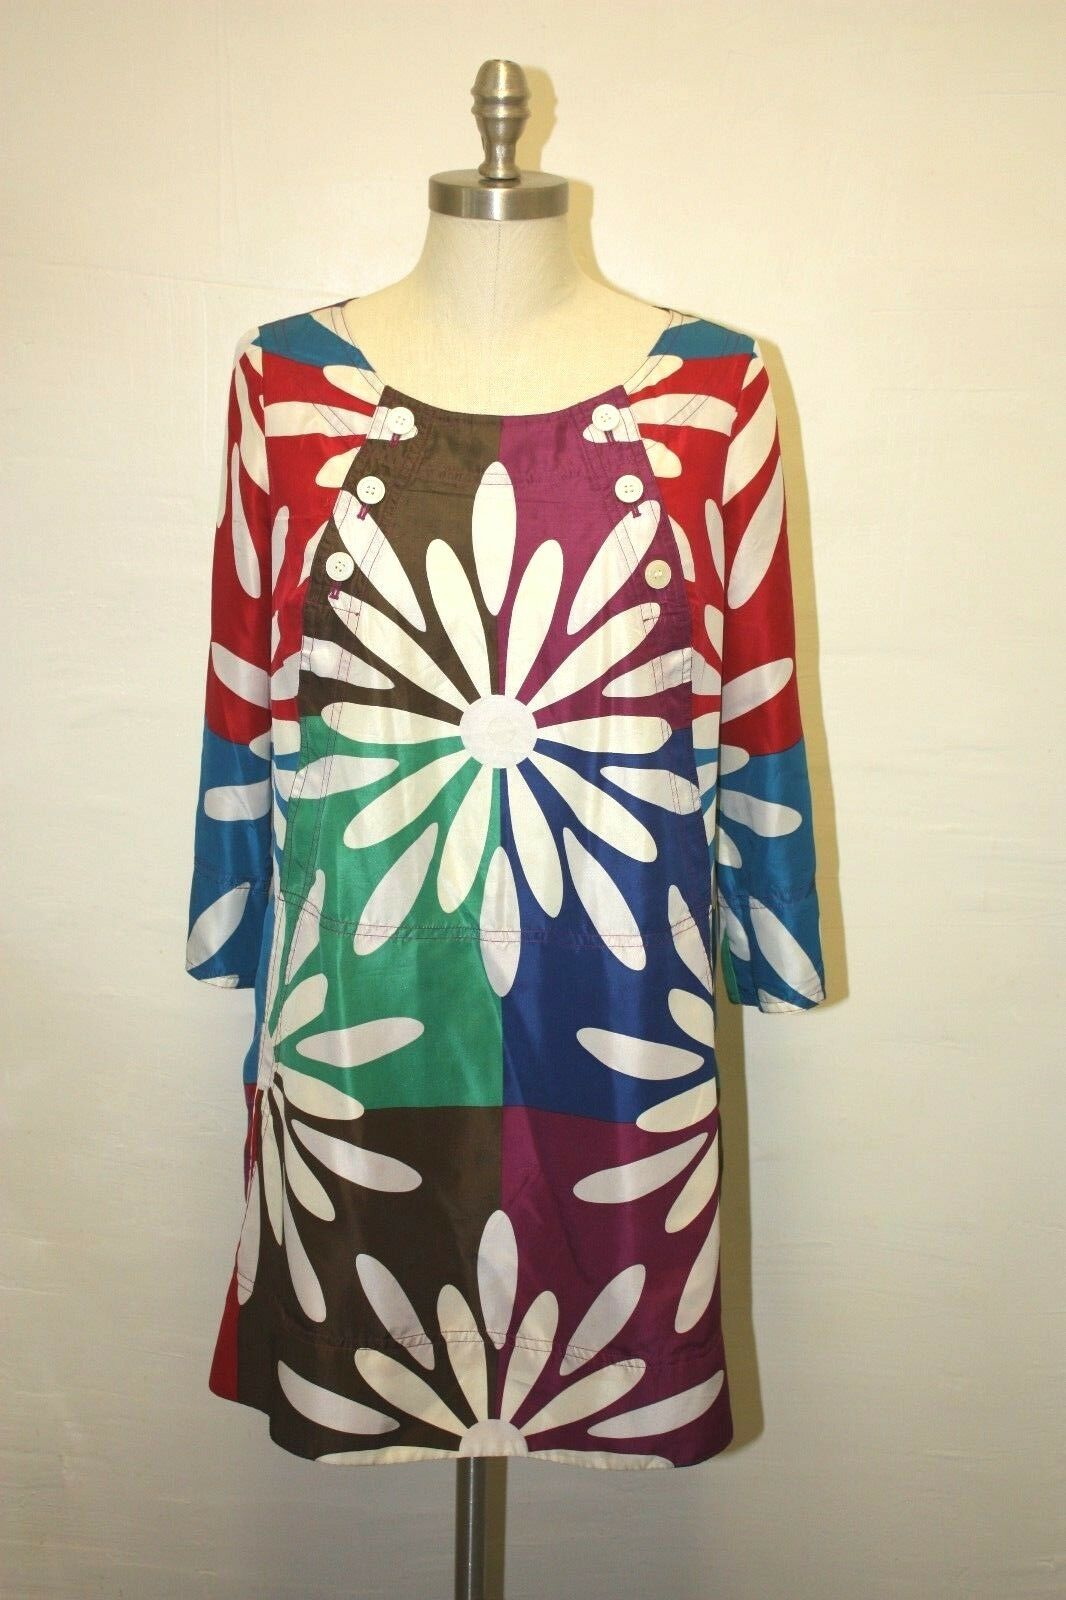 EUC MARC BY MARC JACOBS SILK FLORAL MULTI COLOR LOOSE SHIFT DRESS - SMALL 4 6